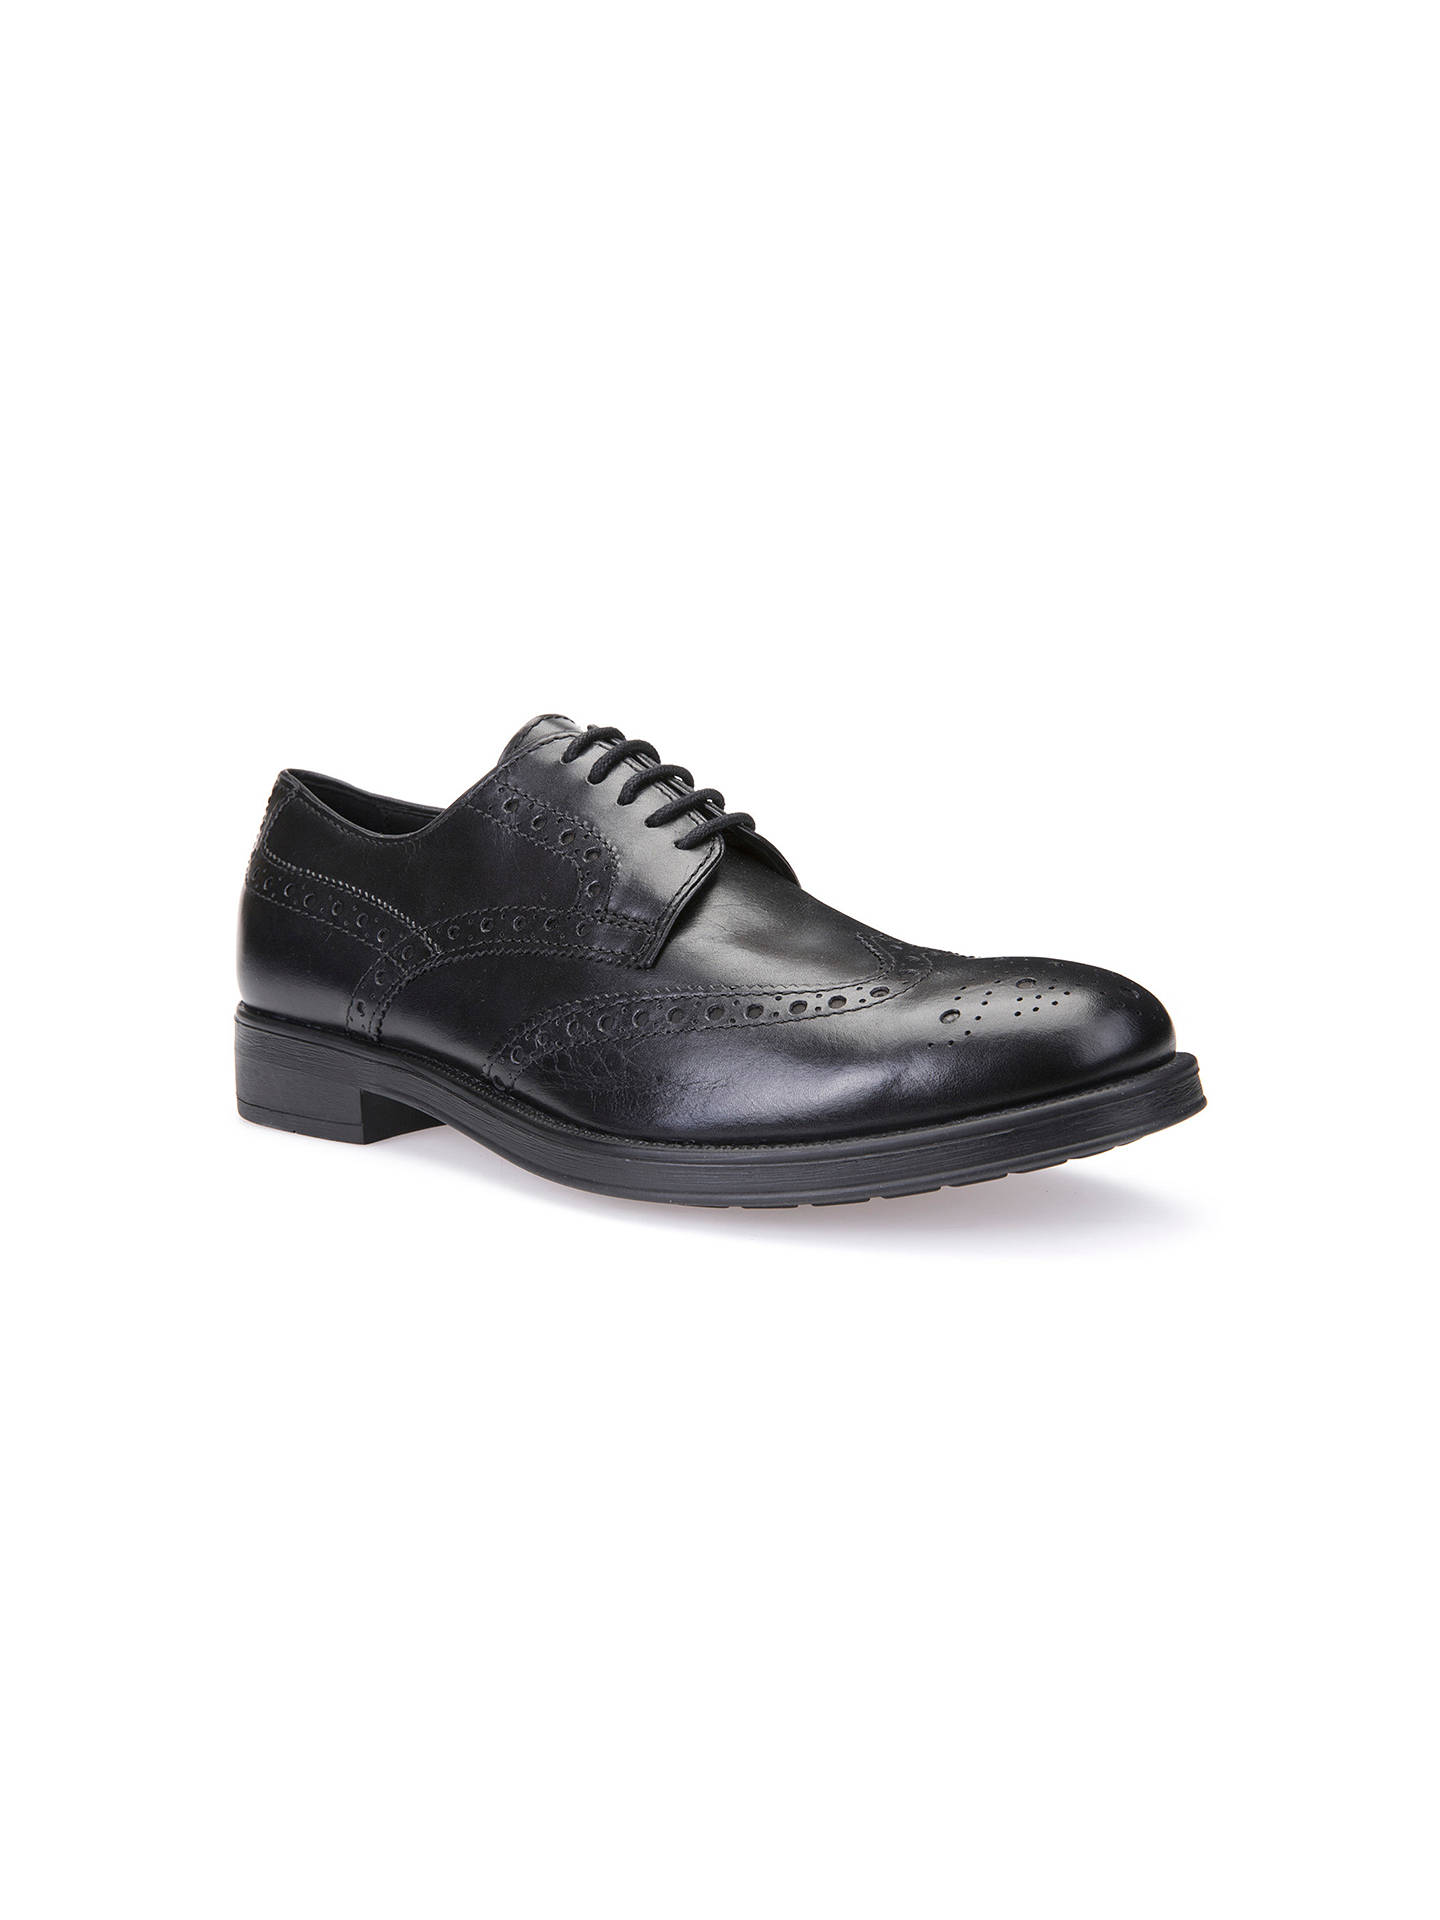 Geox Blade Brogue Boots, Black at John